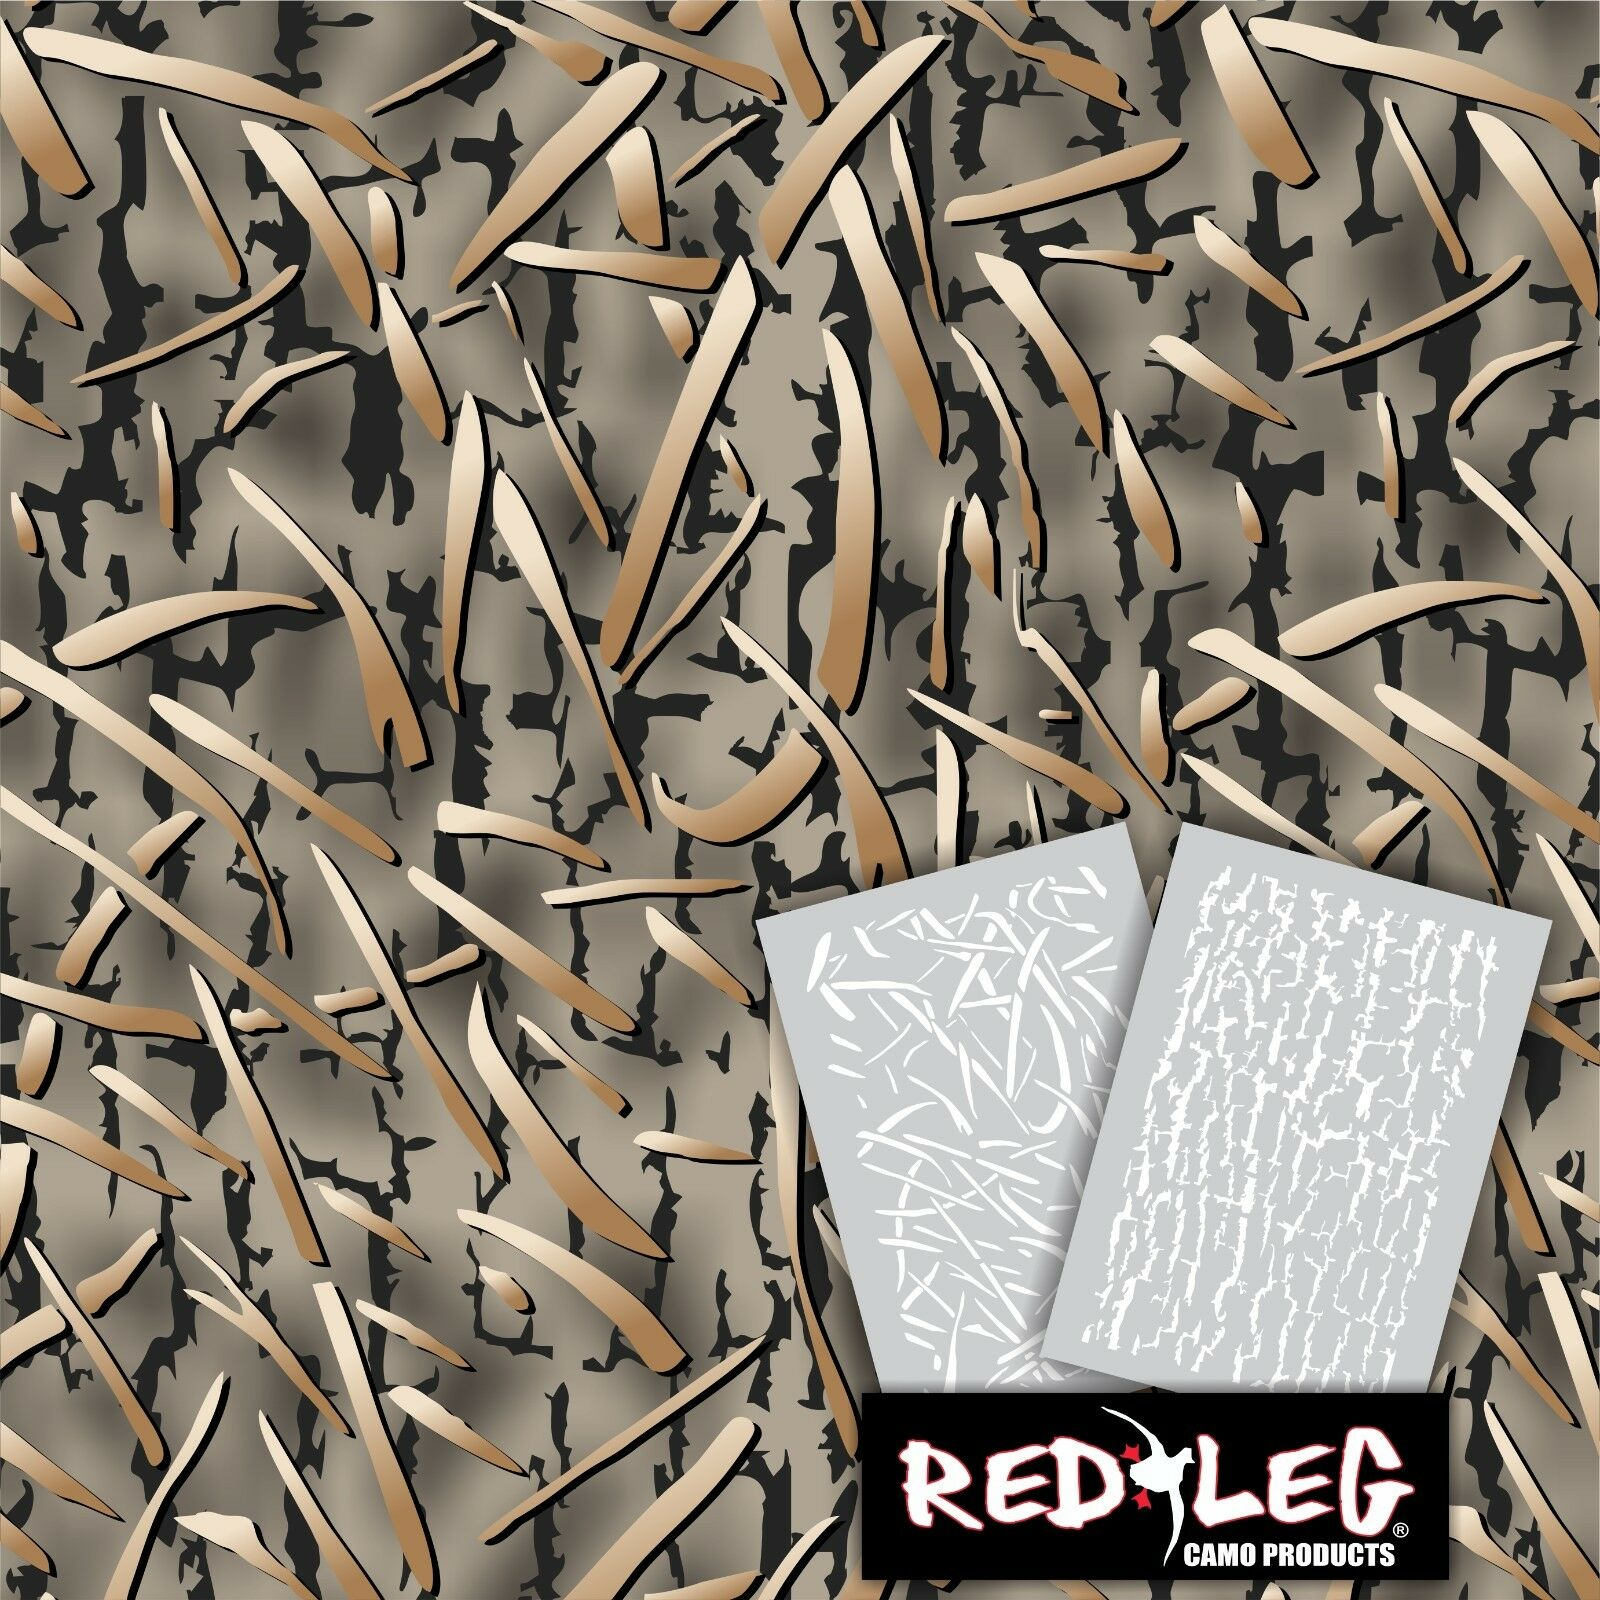 Redleg camo dg2 grass camouflage stencil kit 18x26 duck for Camo paint template